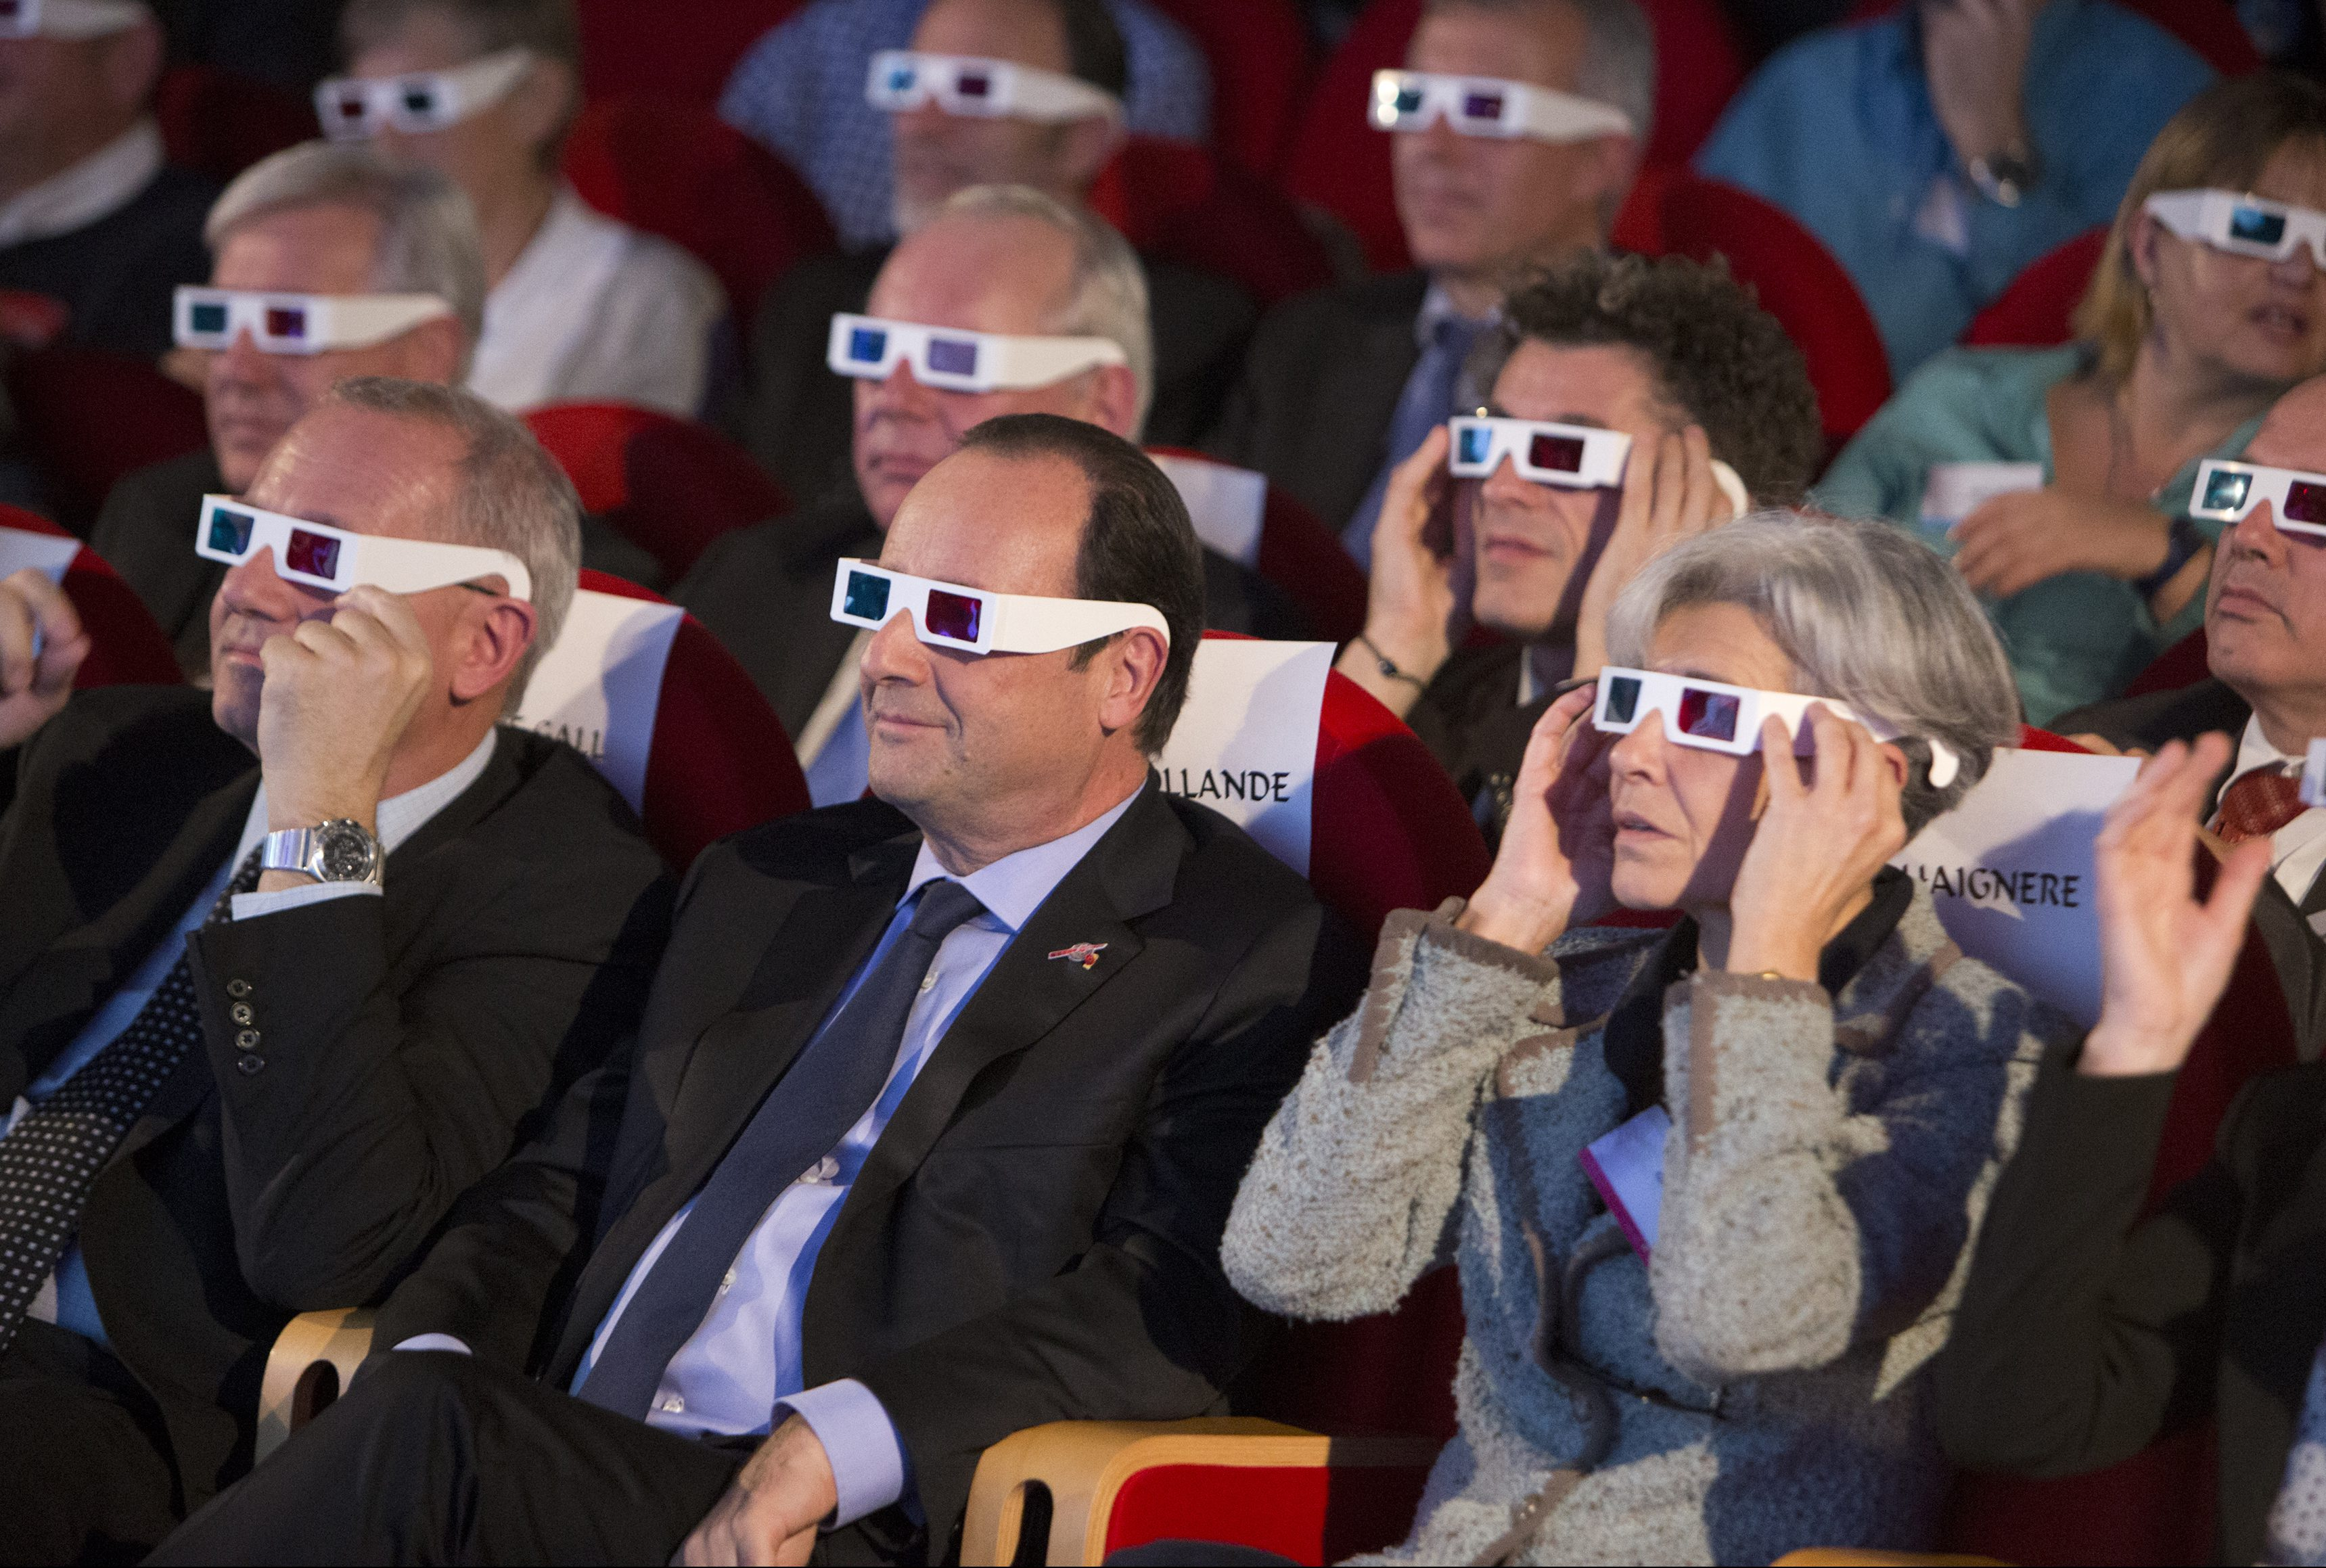 French National Centre for Space Studies (CNES) president Jean-Yves Le Gall (L) French President Francois Hollande (C) and former French astronaut Claudie Haignere wear 3D glasses during a visit at the Cite des Sciences at La Villette in Paris as they follow the successful landing of the Philae lander on comet 67P/ Churyumov-Gerasimenko, November 12, 2014. The European Space Agency's (ESA) landed a probe on a comet on Wednesday, a first in space exploration and the climax of a decade-long mission to get samples from what are the remnants of the birth of Earth's solar system.